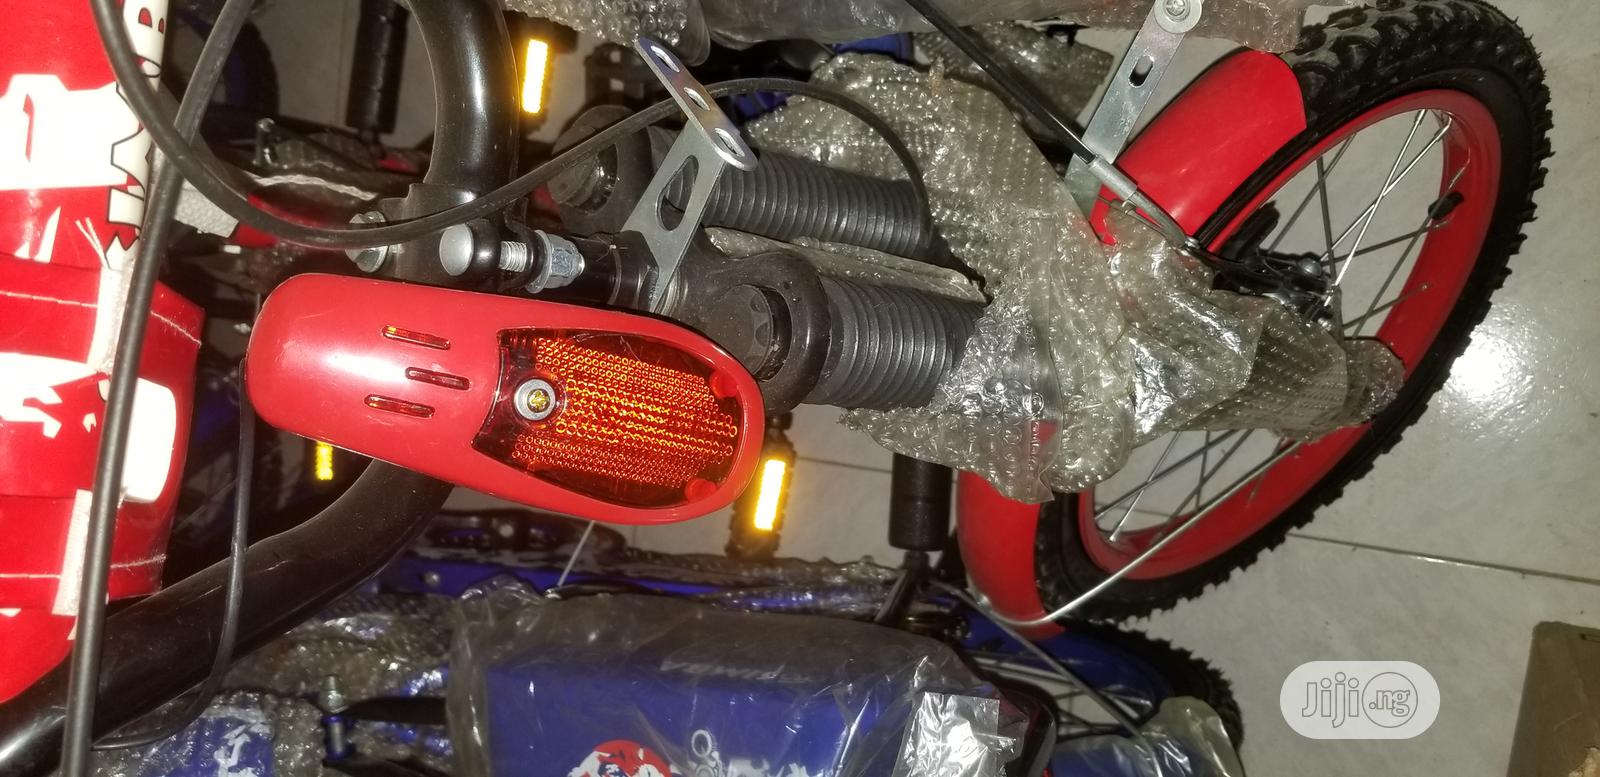 Bicycle 8-Sound Loud Electric Horn | Sports Equipment for sale in Magodo, Lagos State, Nigeria